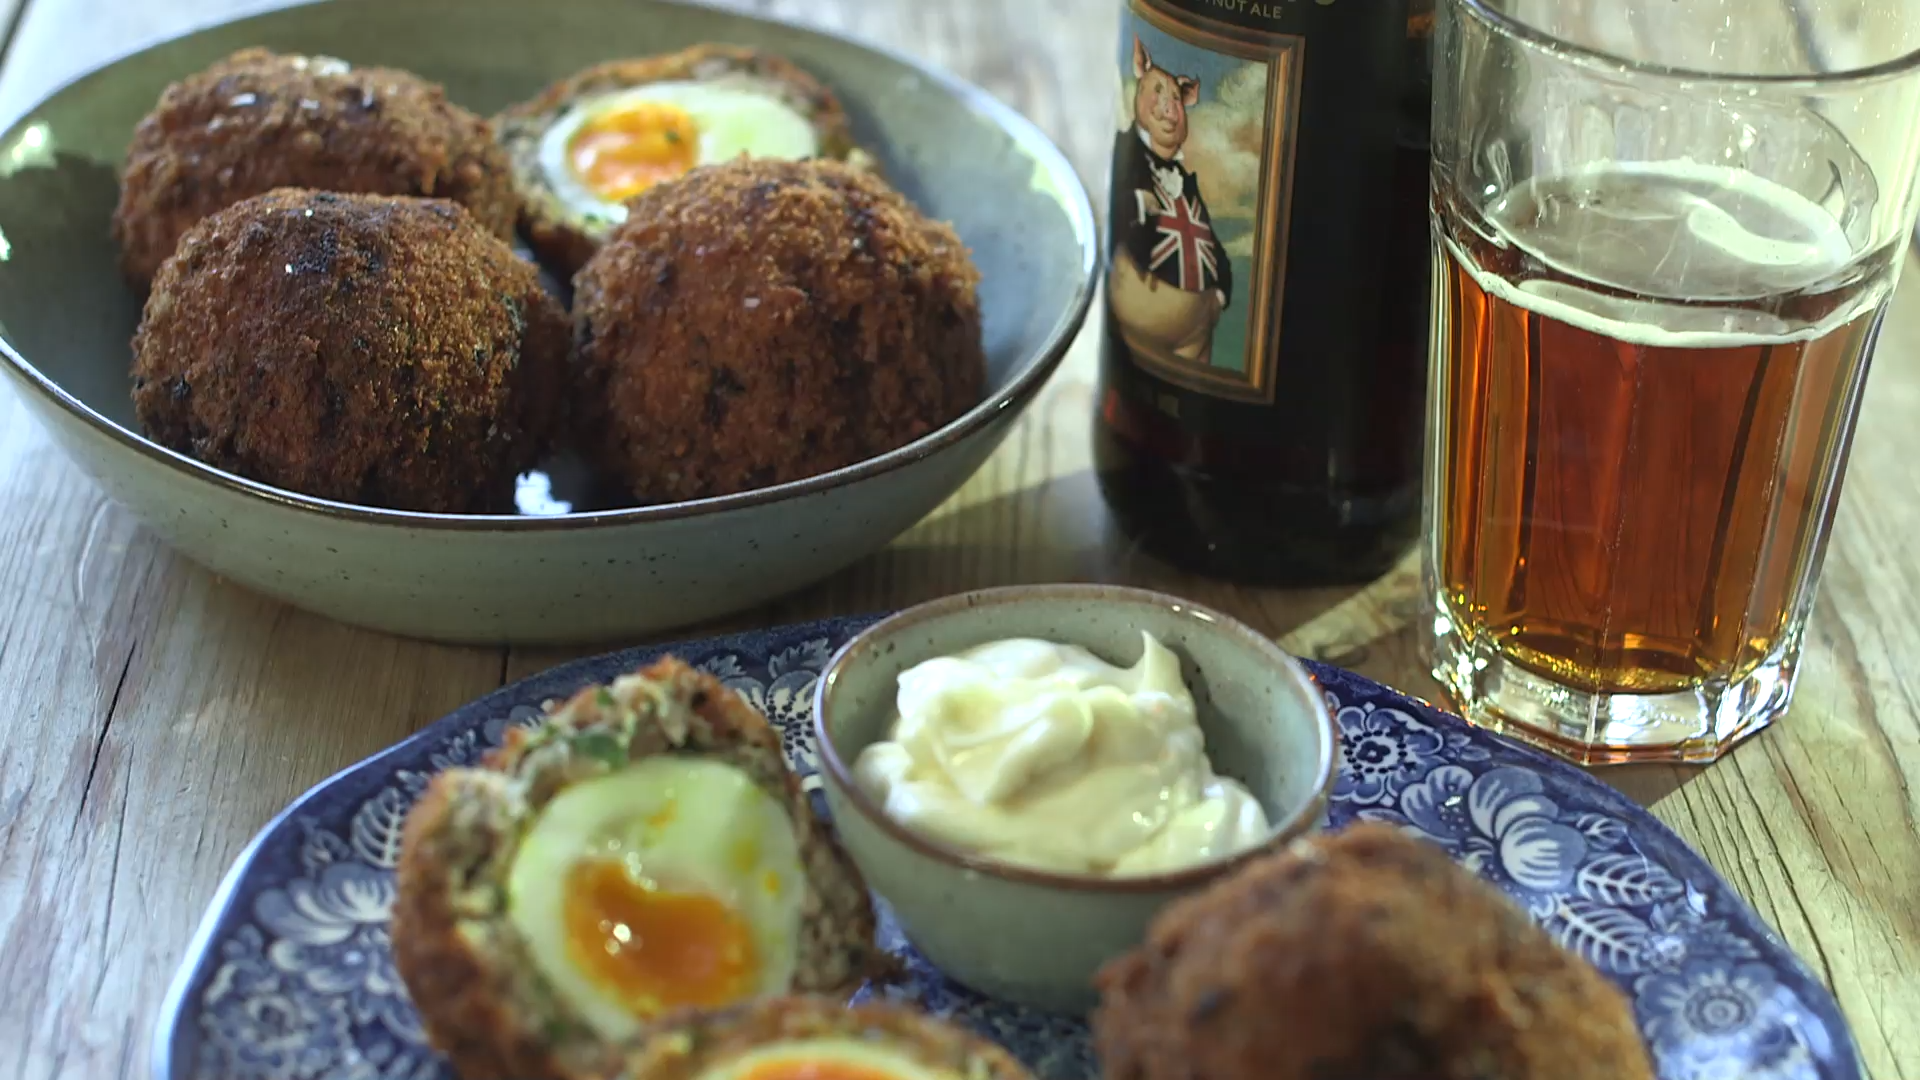 Scotch eggs recipe #scotcheggs